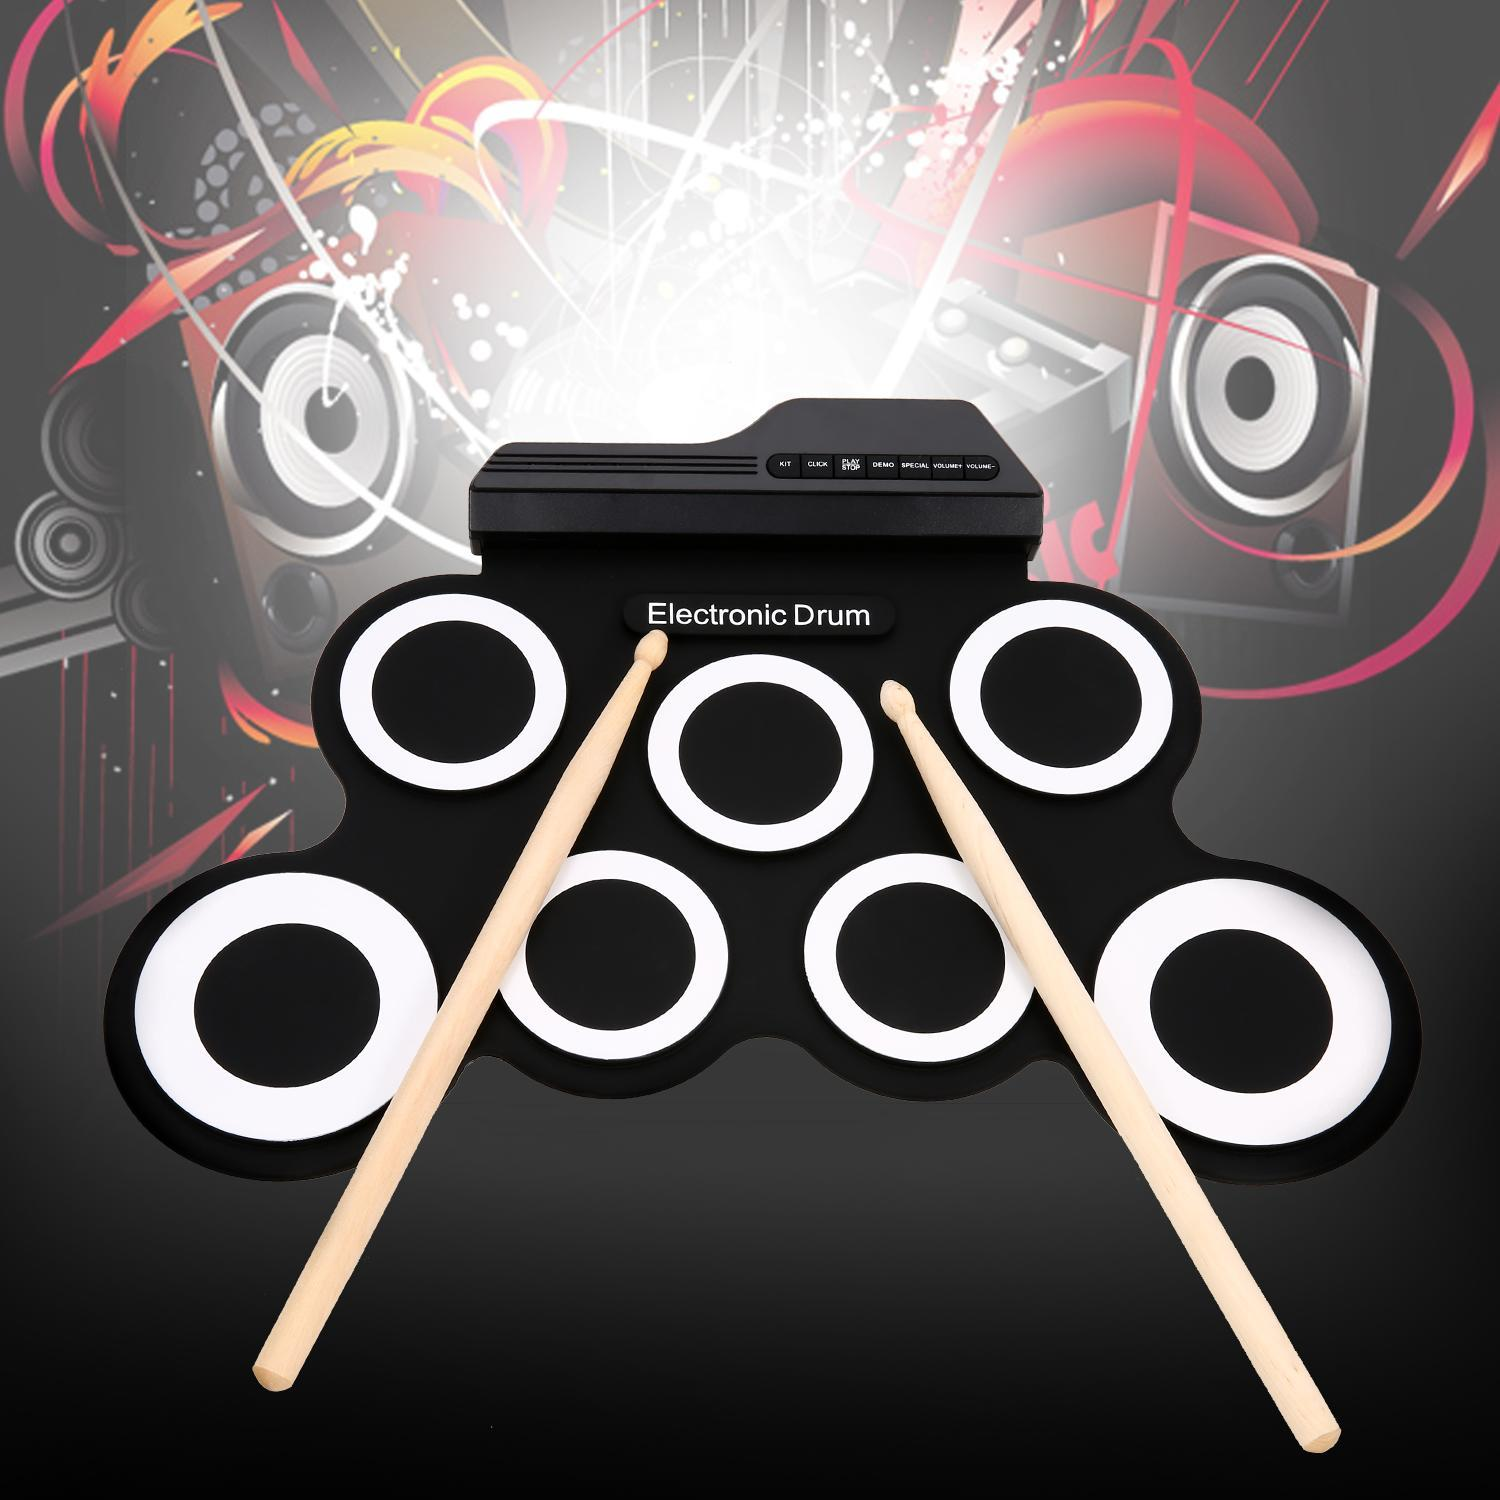 Electronic Drum Set USB MIDI Roll-Up W  Built-in Speakers, Foot Pedals, Drumsticks, Power... by